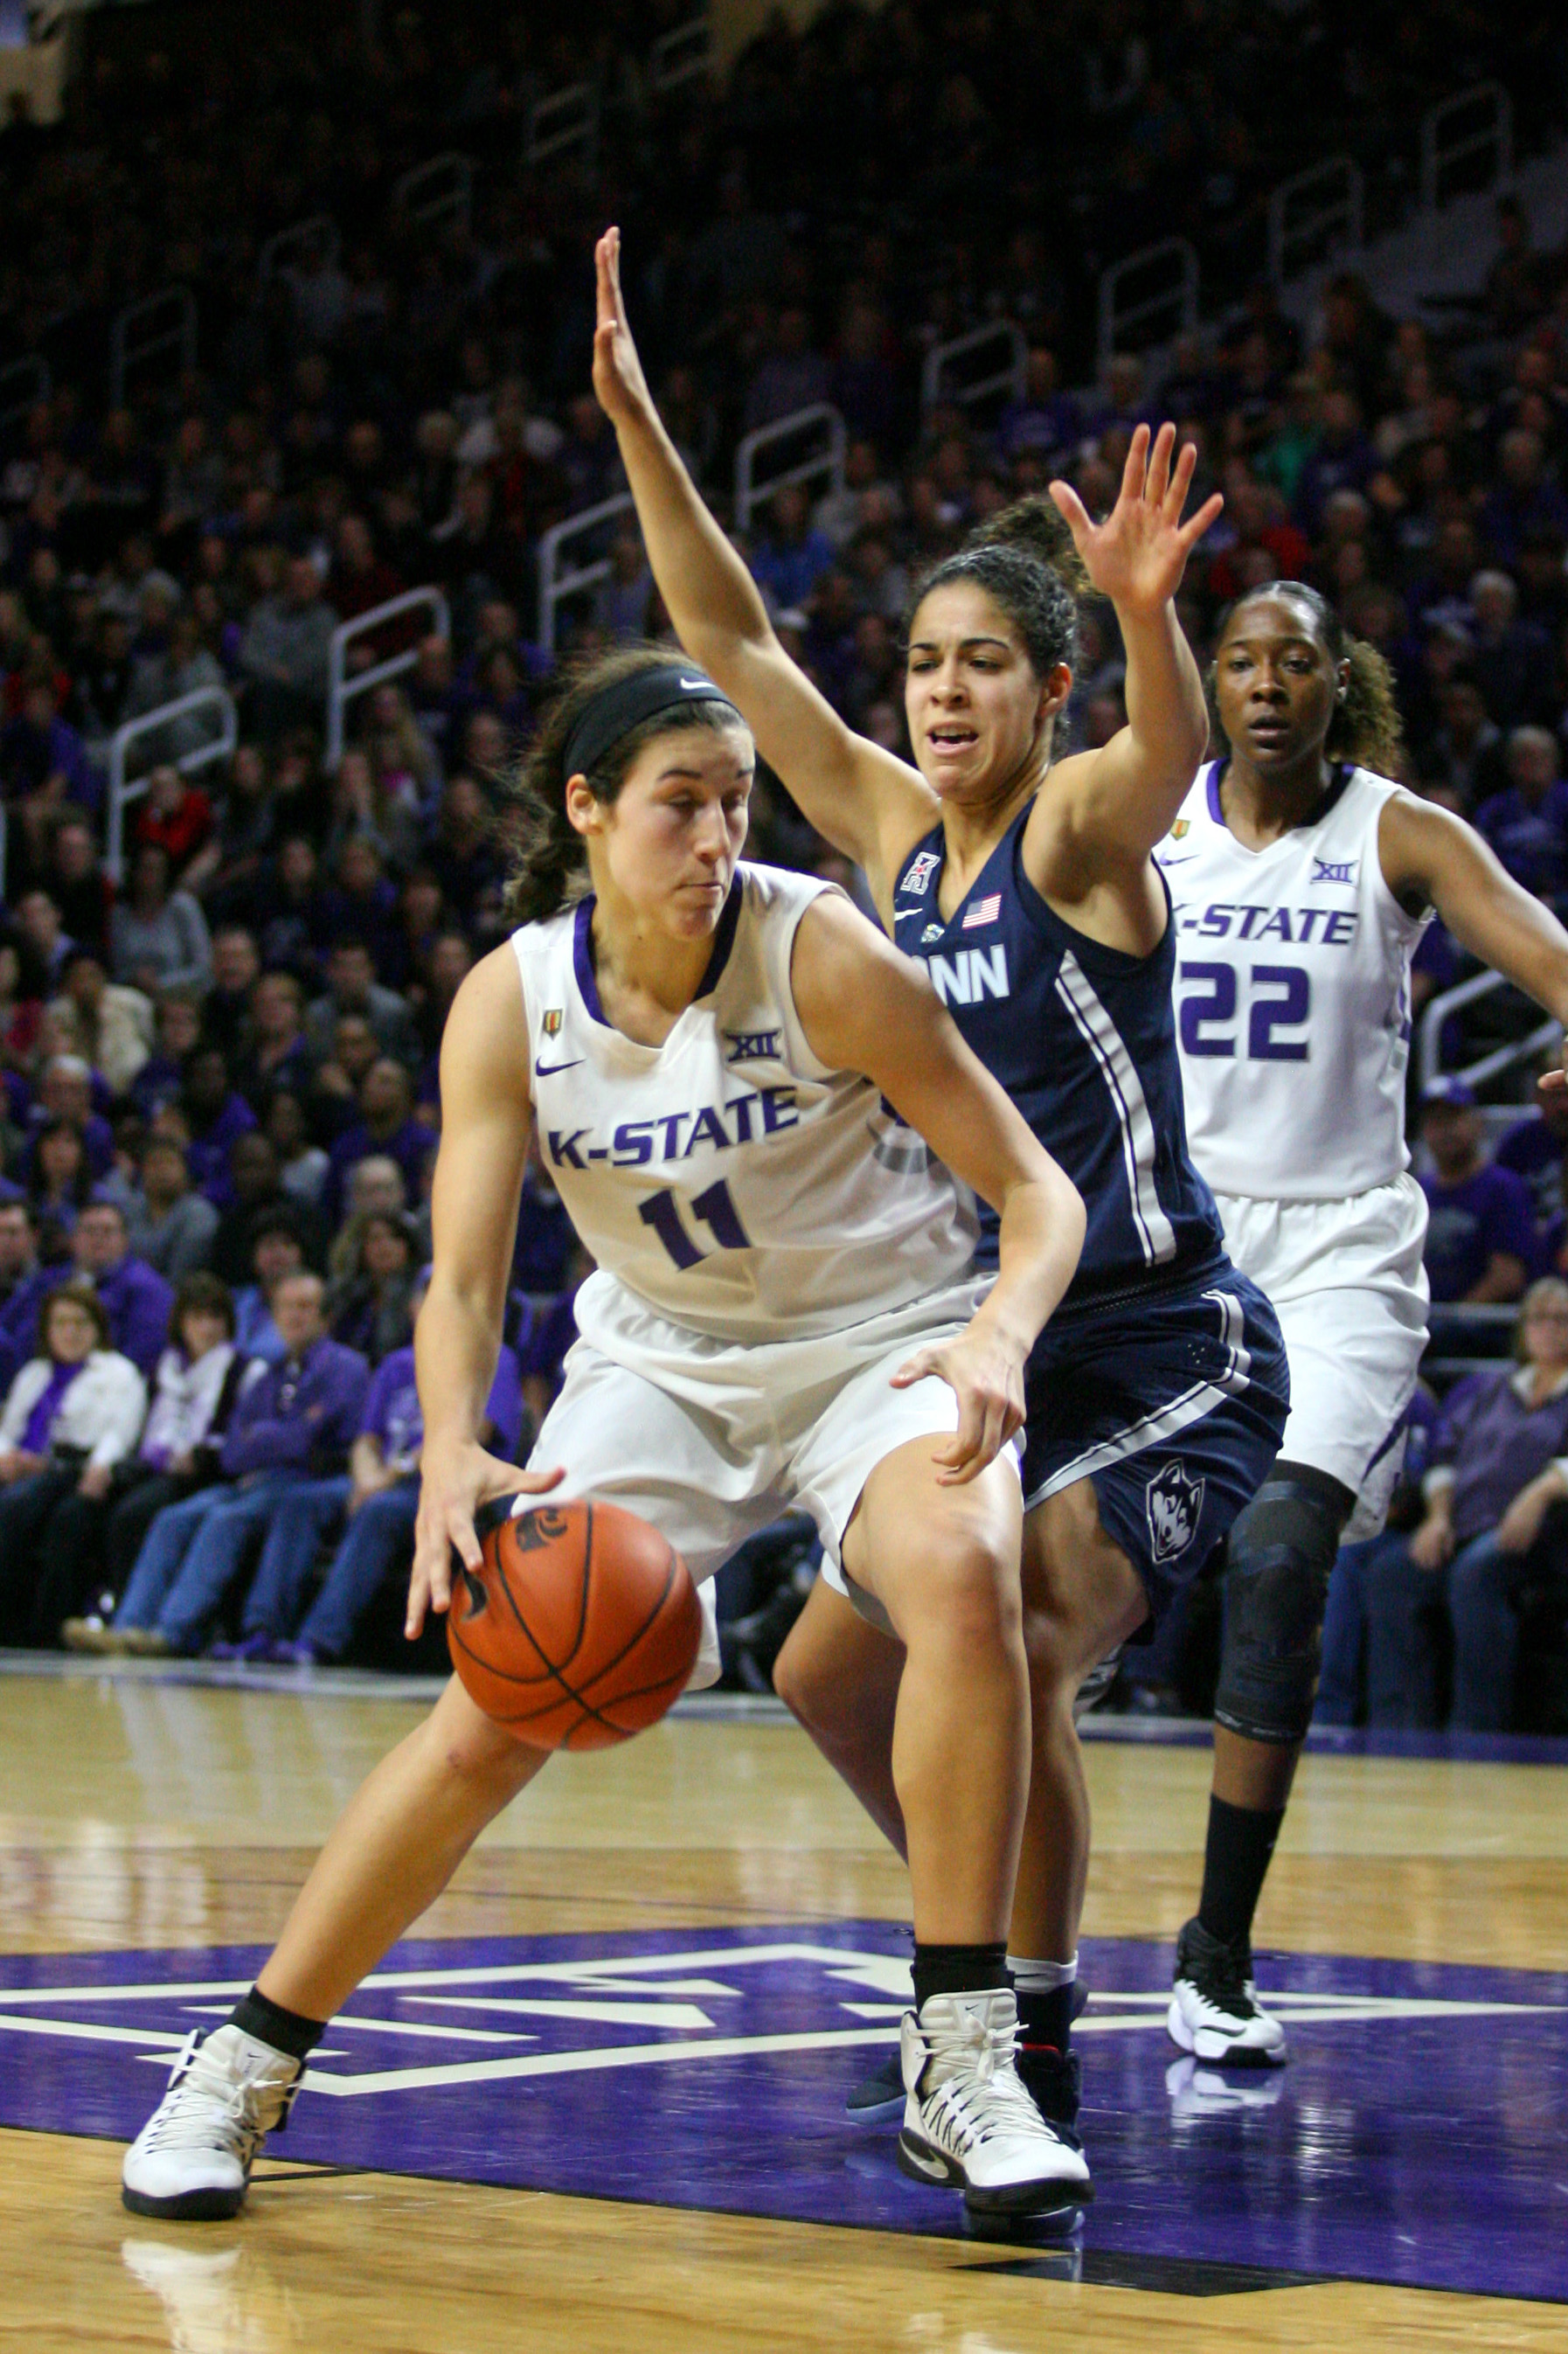 Peyton Williams unloaded on Saturday. Can she do the same tonight?